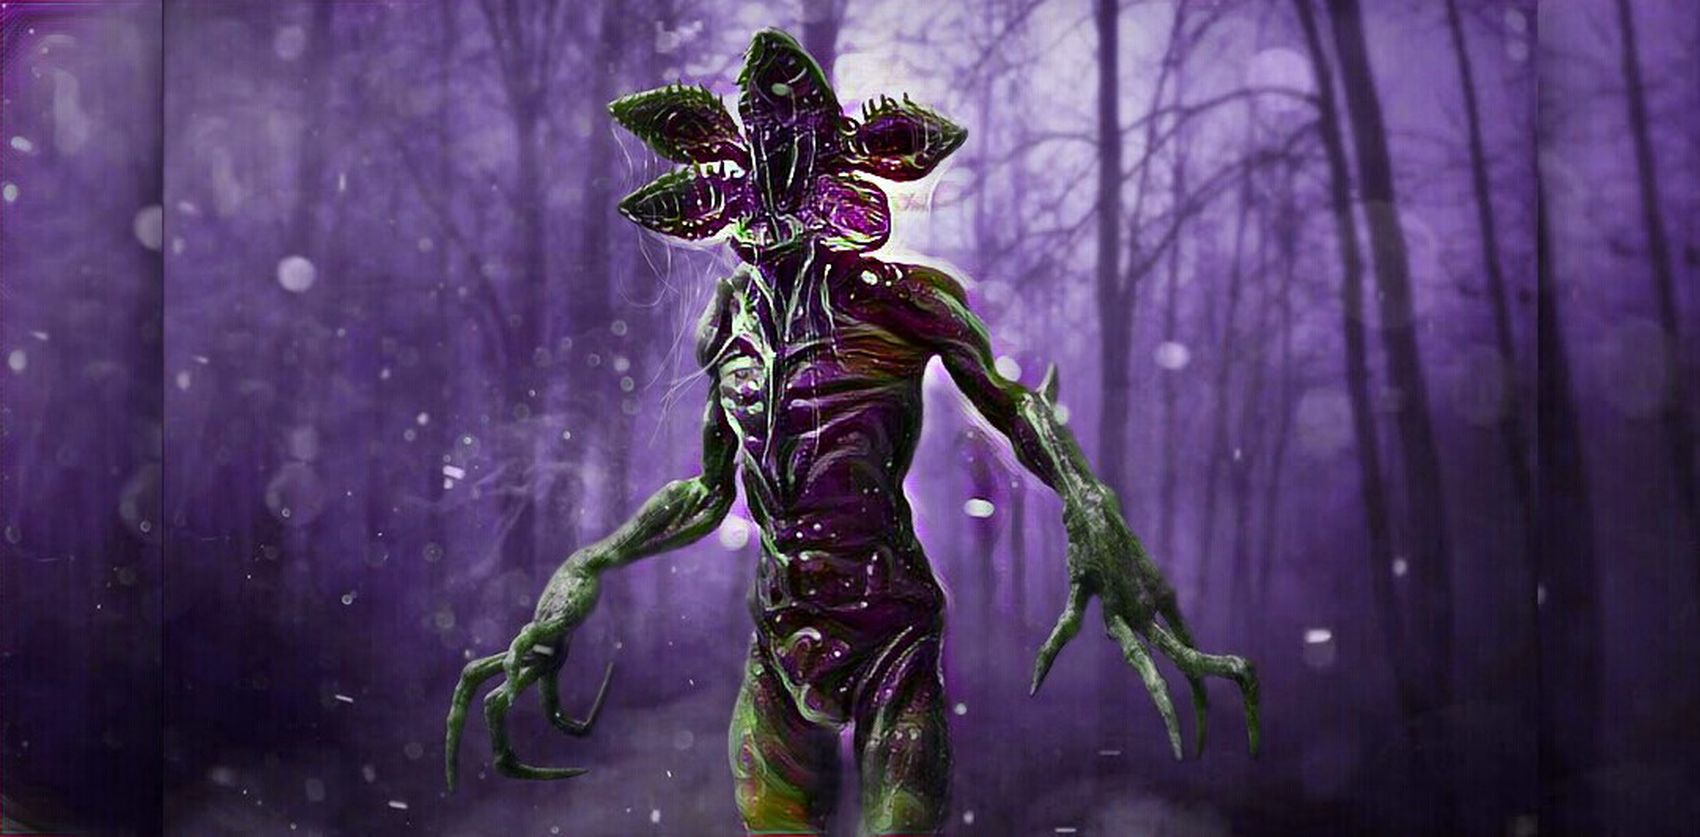 This is the demogorgon from strangerthings Spooky Purple StrangerThings Tradition Celebration Adult Headdress Night One Person People Outdoors Headwear One Man Only Adults Only Only Men First Eyeem Photo